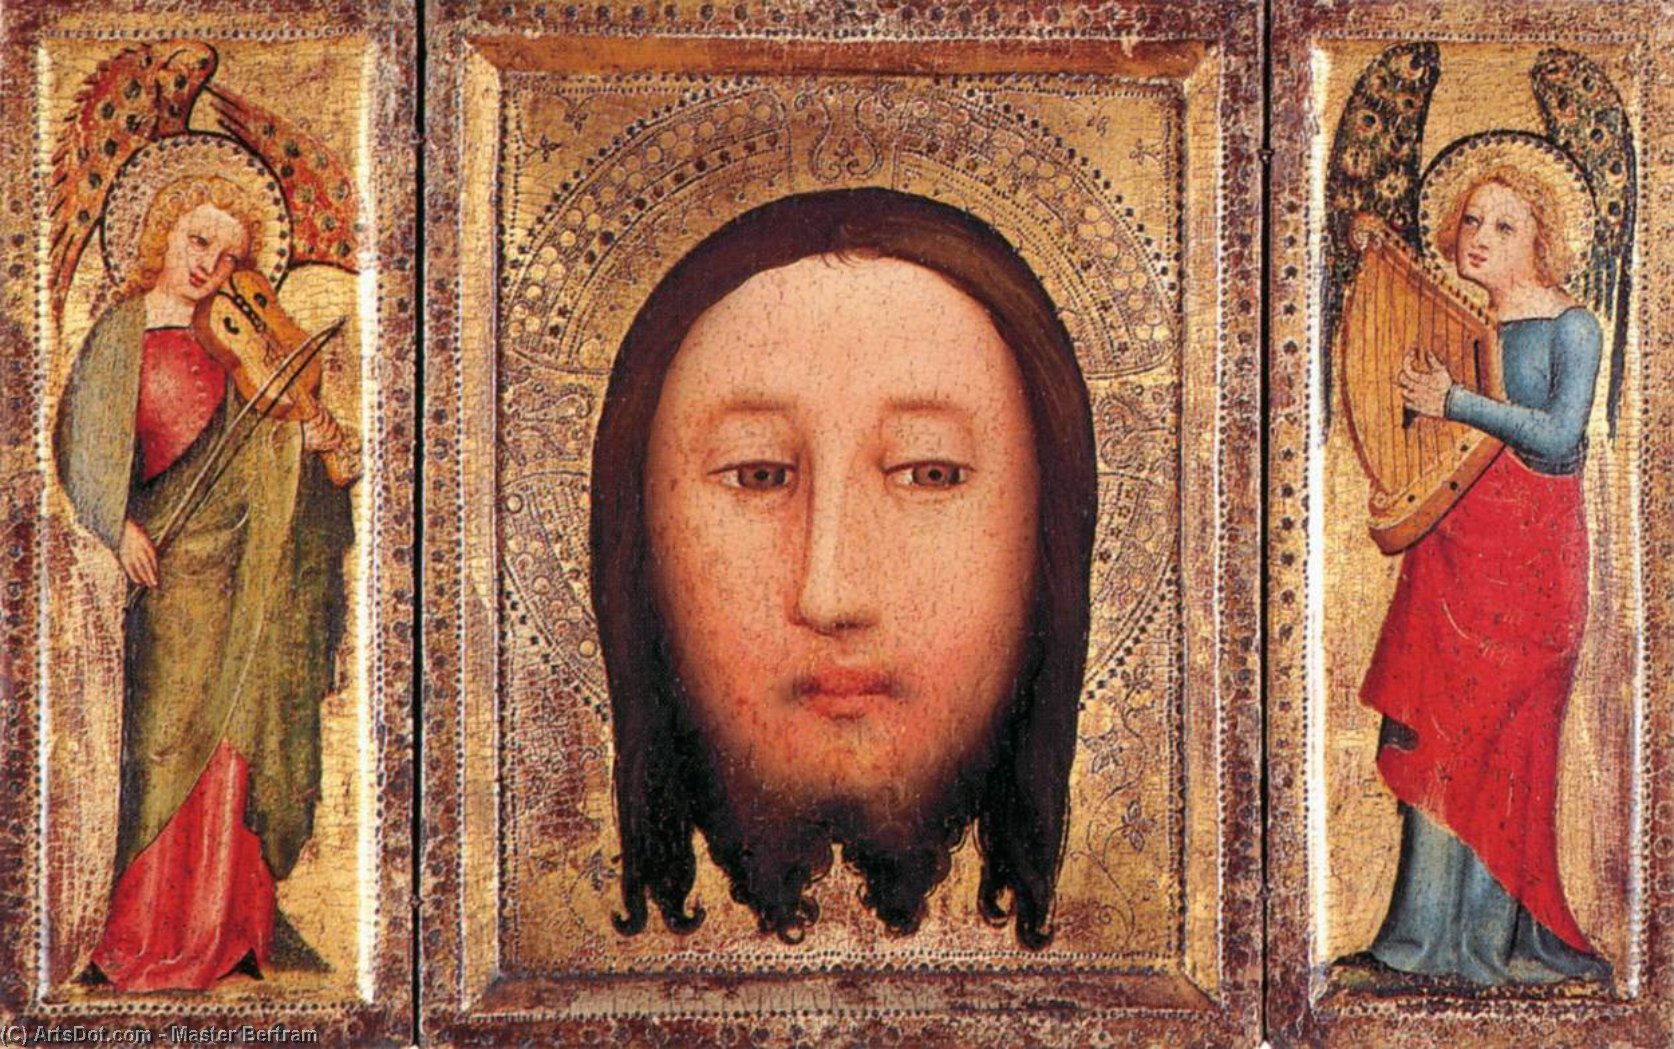 Triptych: The Holy Visage of Christ, 1395 by Master Bertram (1345-1415, Germany) | Art Reproduction | ArtsDot.com